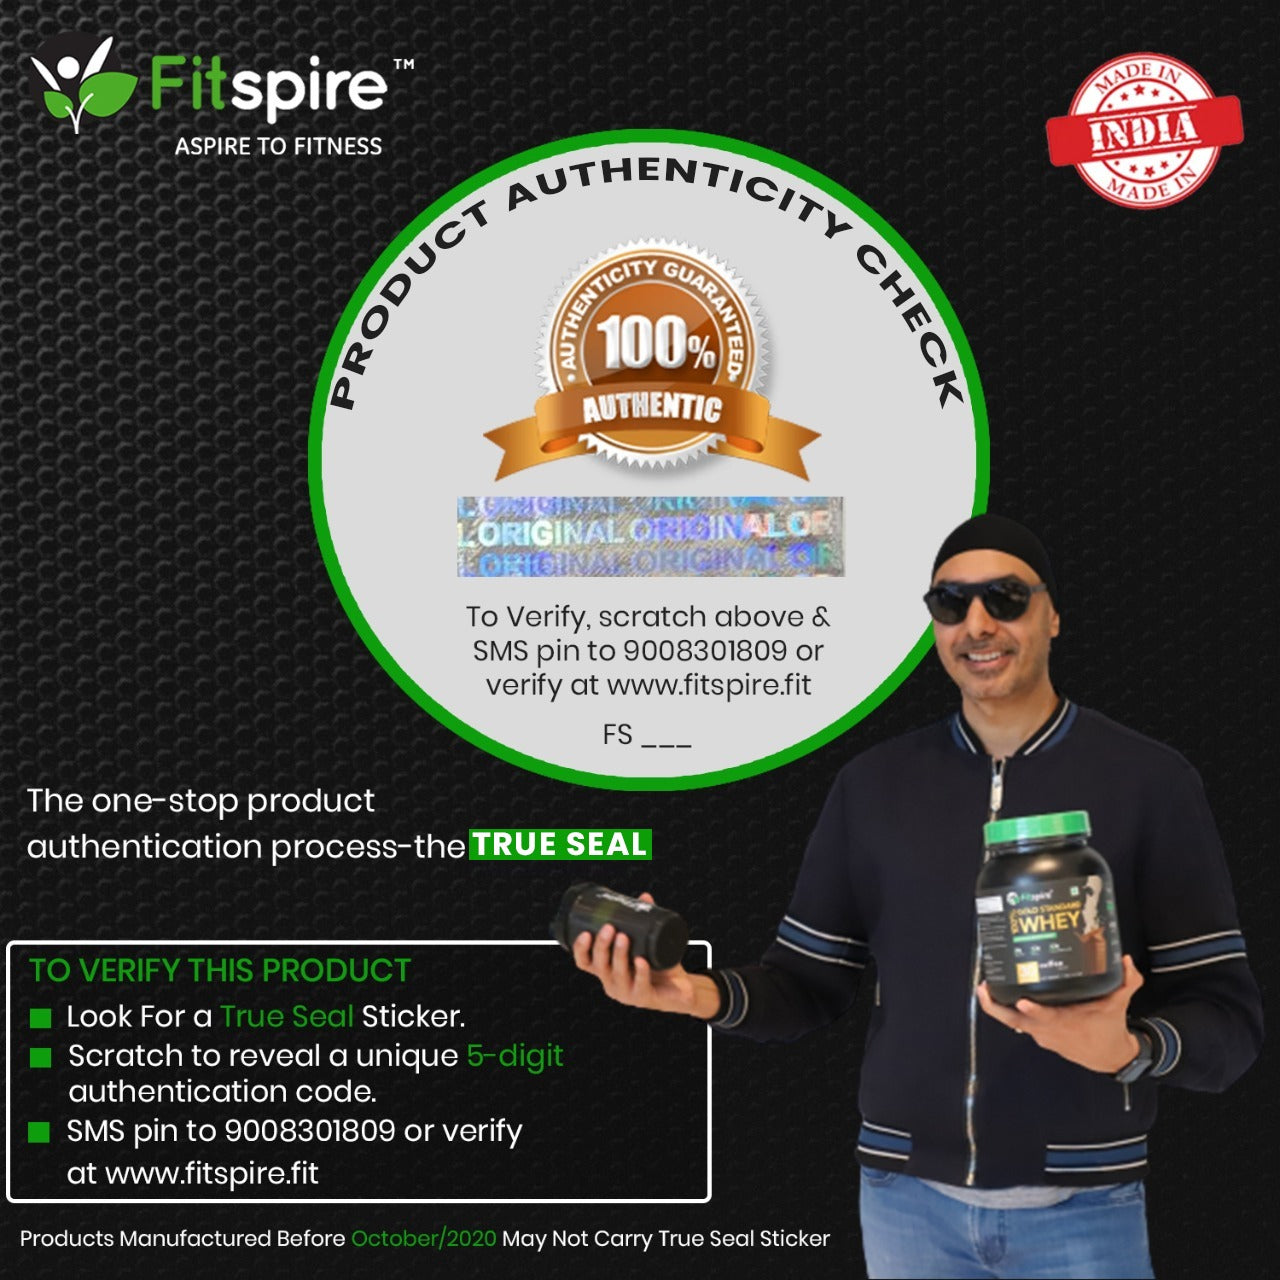 Fitspire Advanced Isolate Gold Whey Protein with Shaker | No Added Sugar, Low Carbs, Zero Cholesterol & Gluten Free | 2 Kg | Coffee